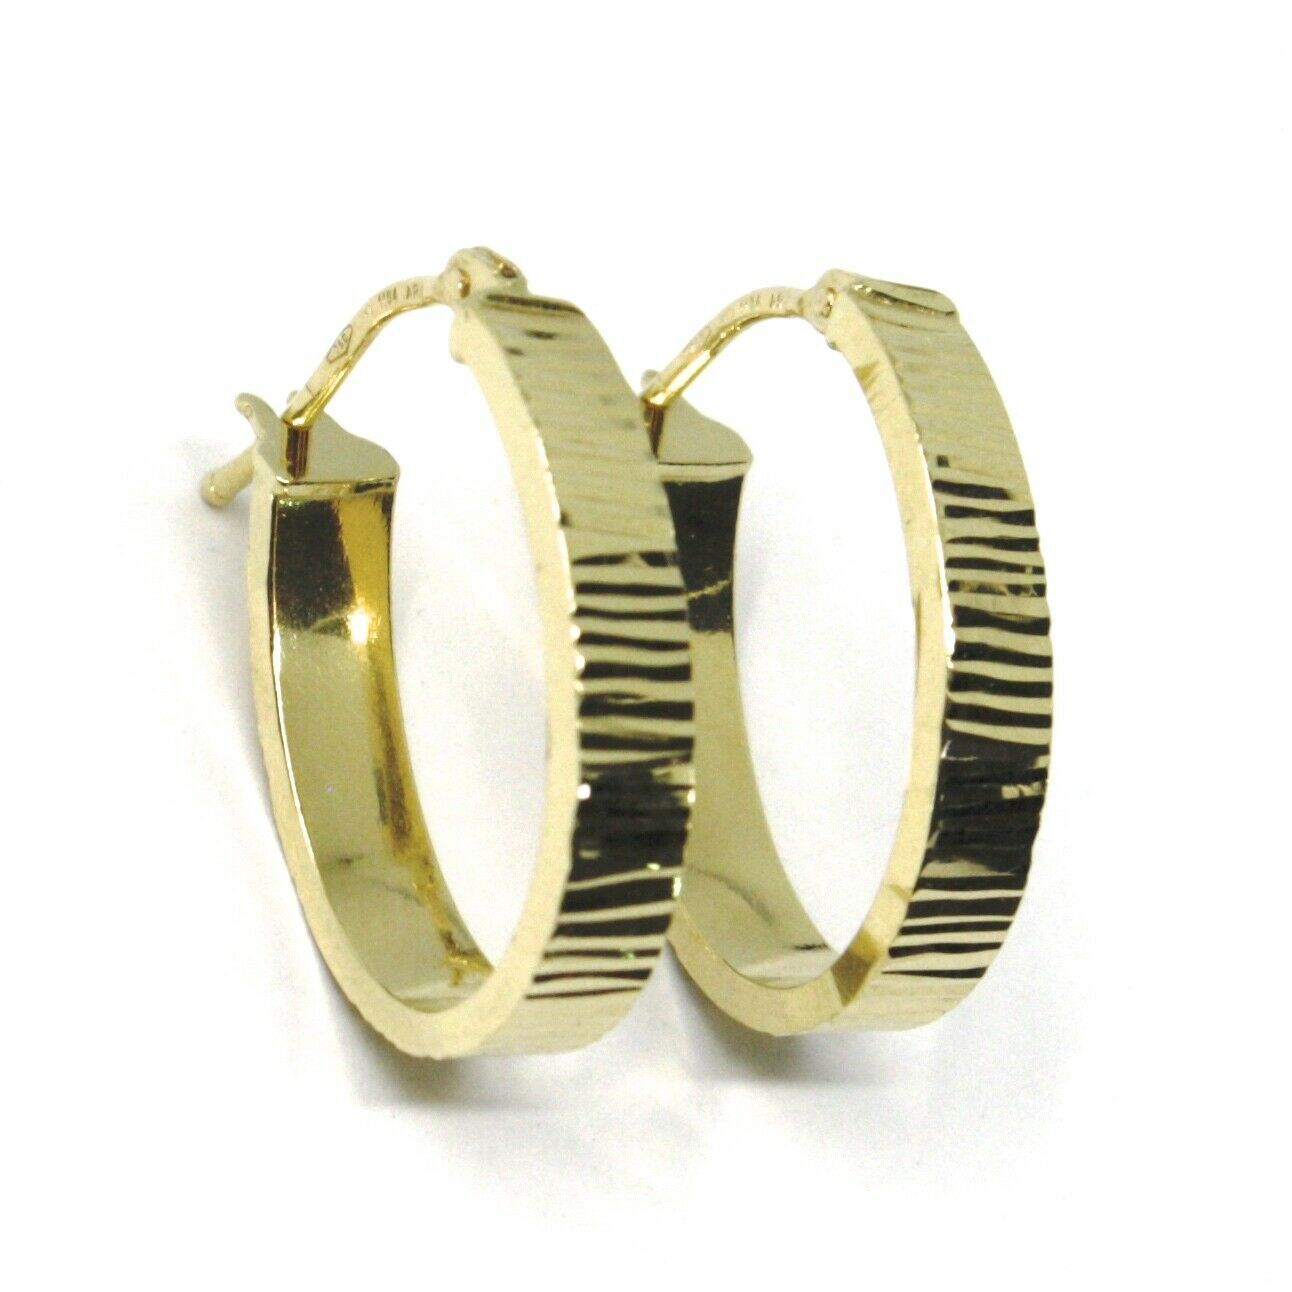 18K YELLOW GOLD CIRCLE HOOPS OVAL SQUARED STRIPED WORKED EARRINGS 20 MM x 4 MM